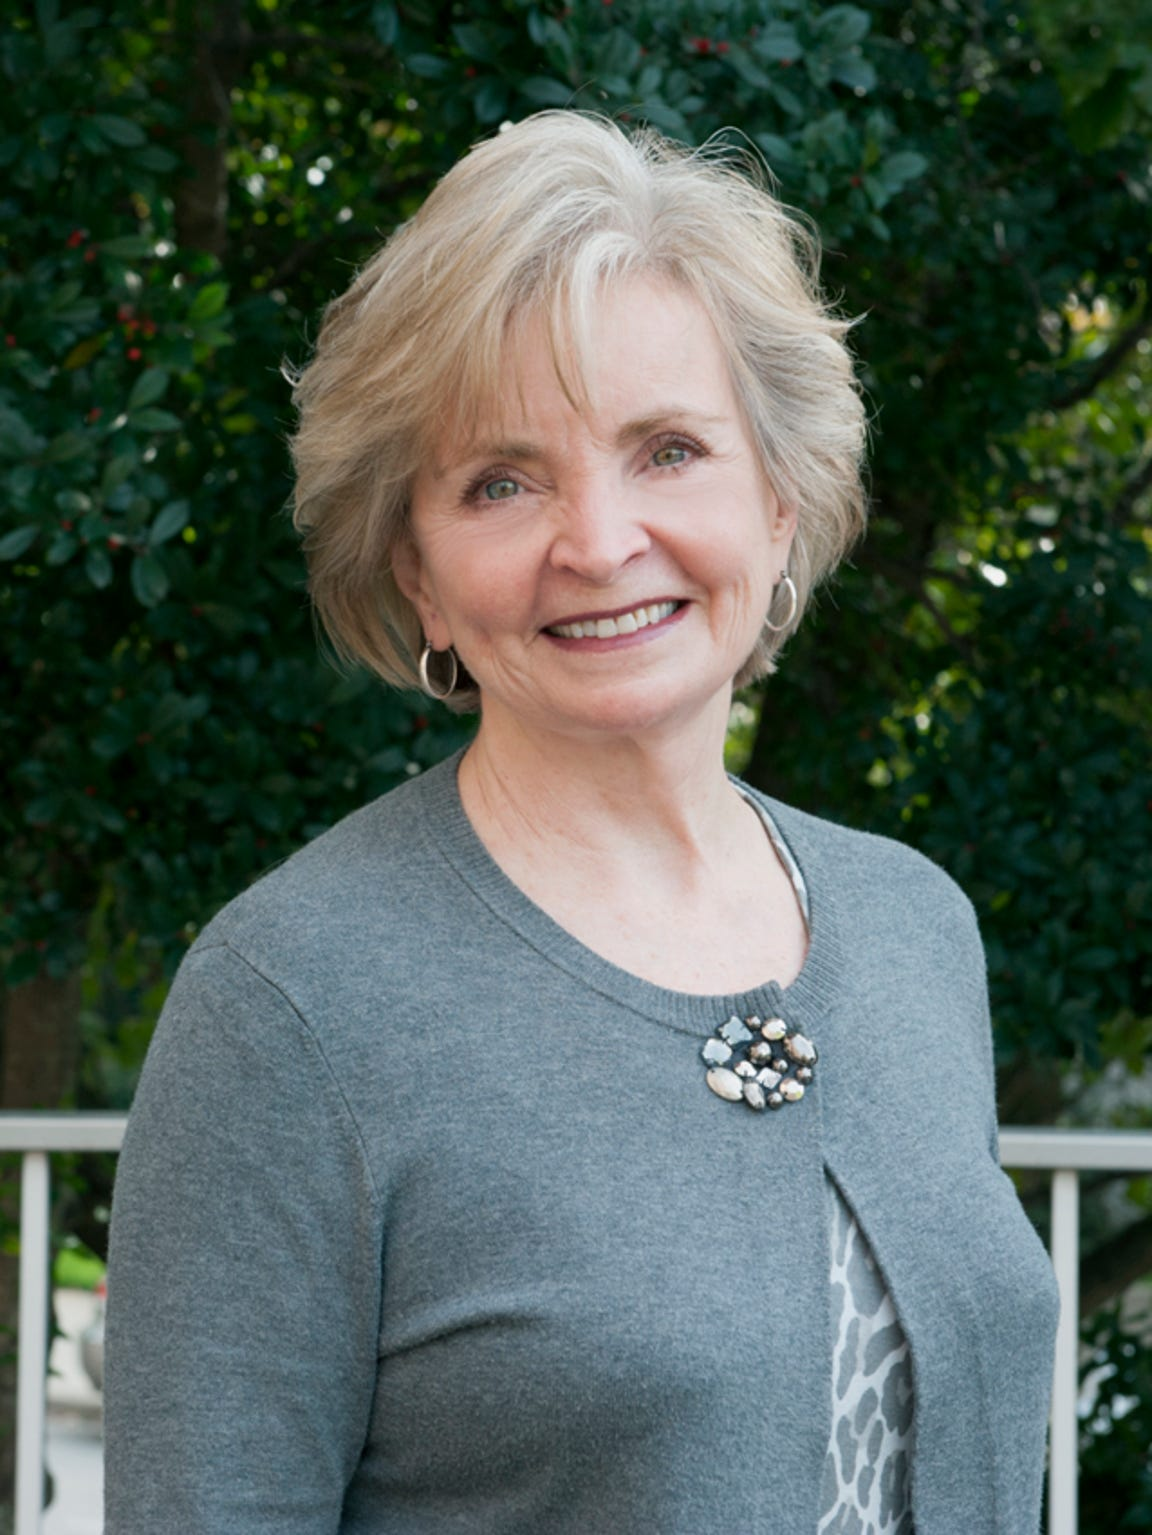 June Atkinson, State Superintendent of North Carolina